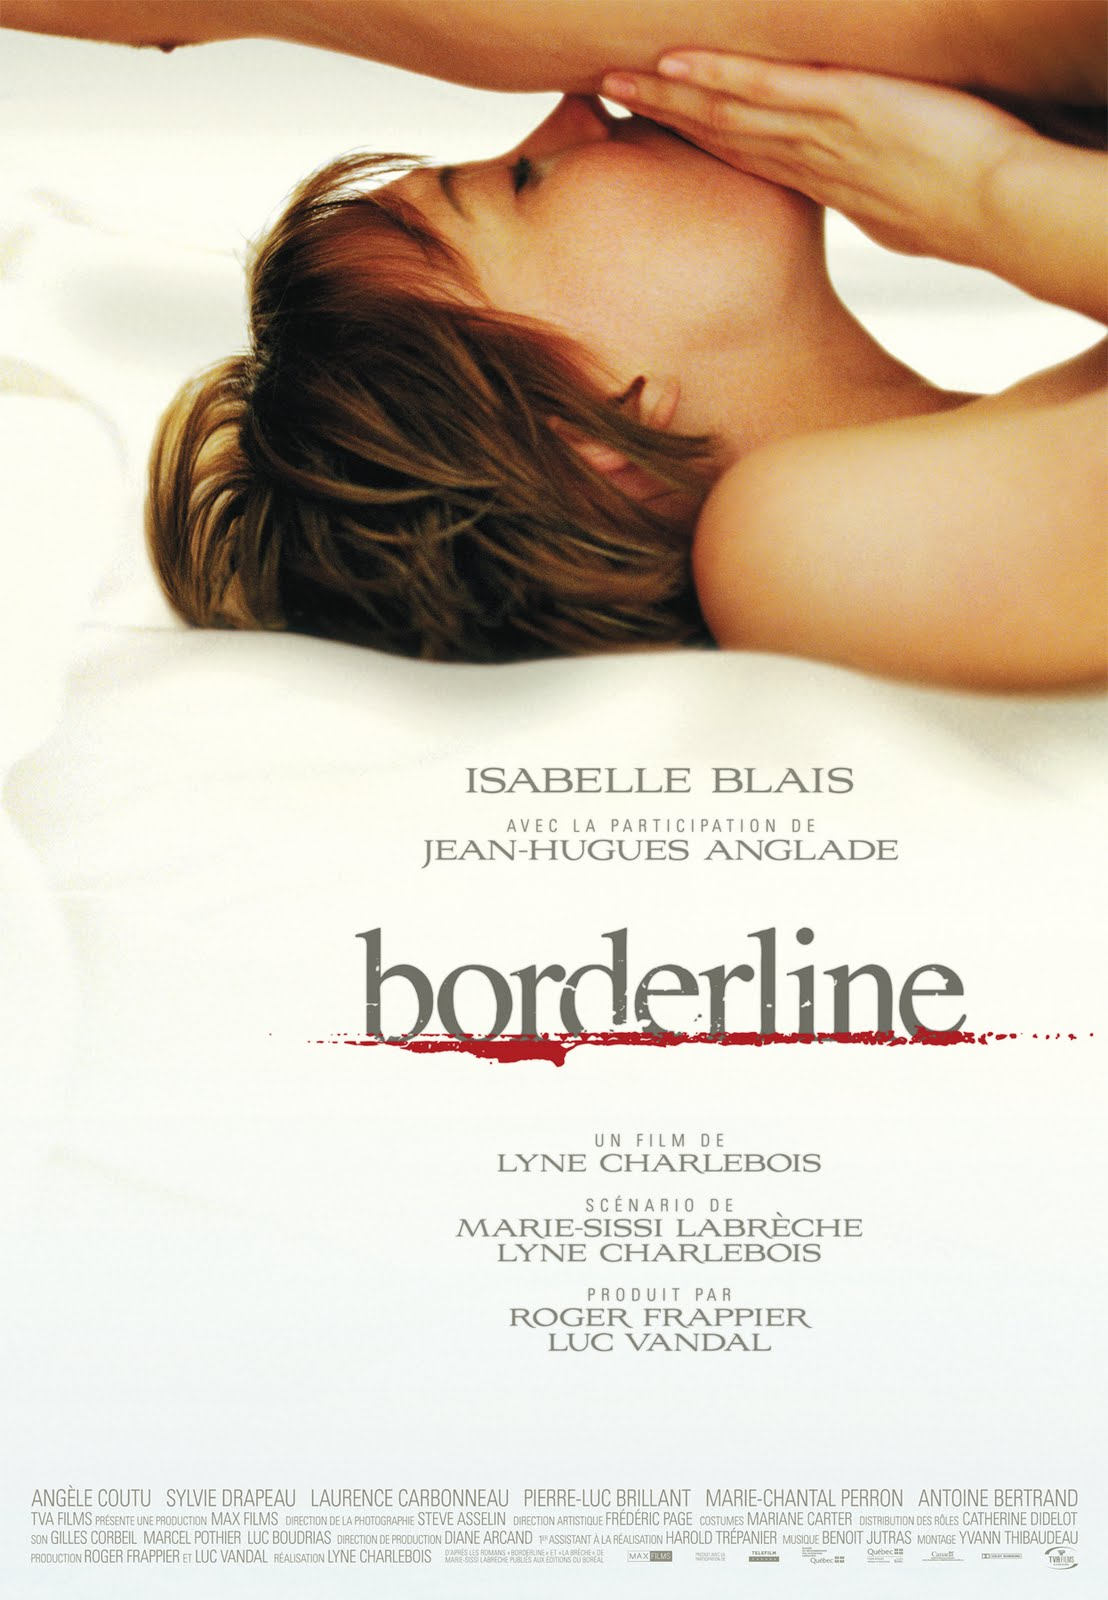 Isabelle Blais total nude in Borderline ...